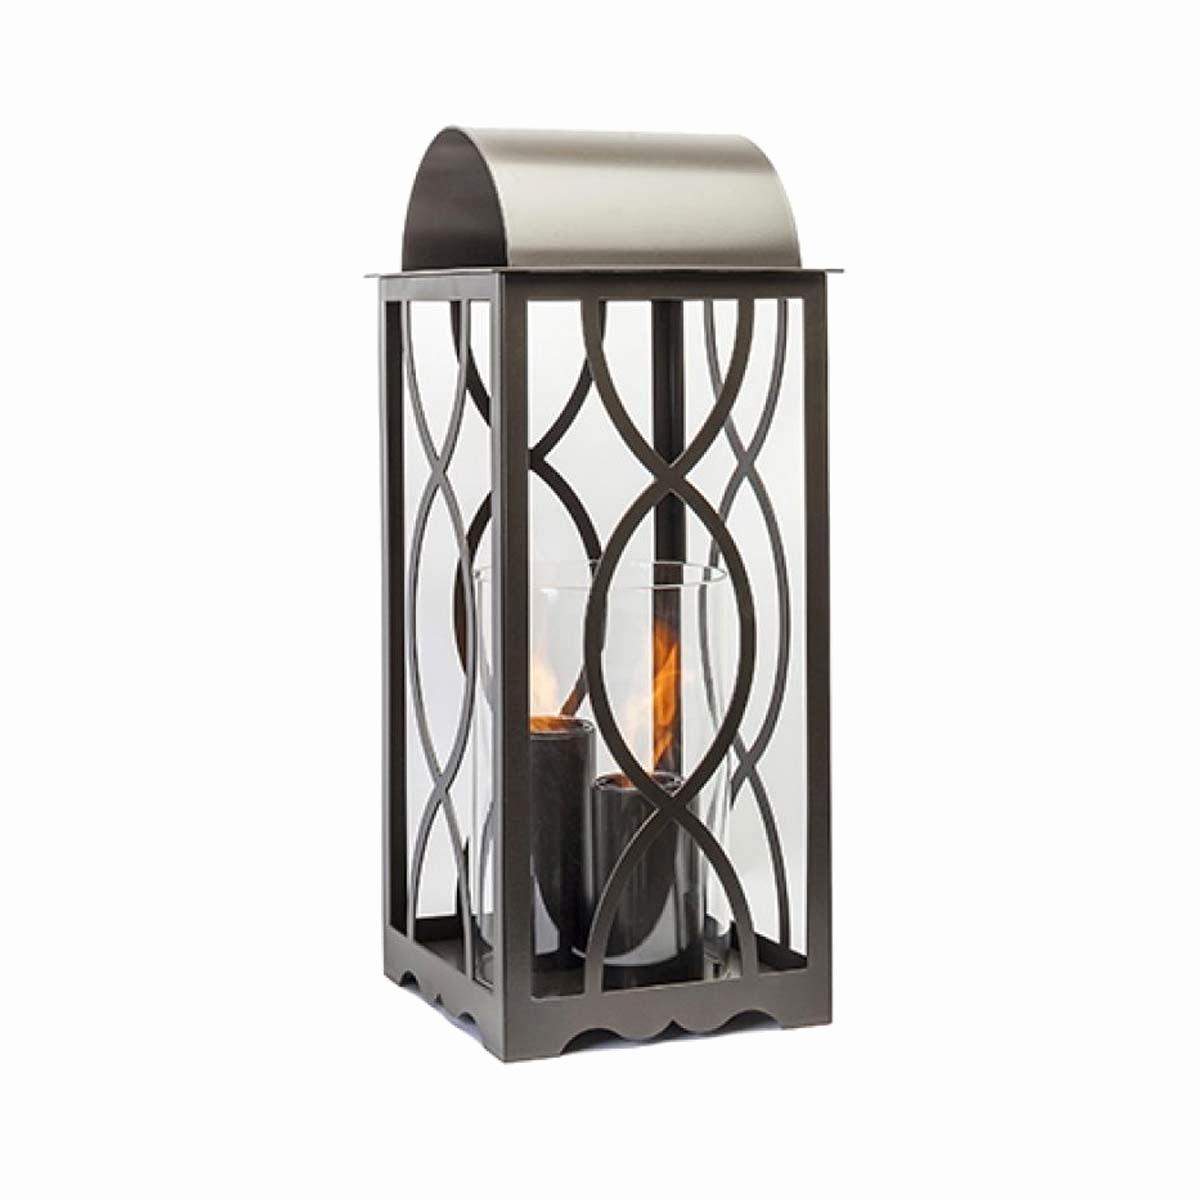 25 Fresh Extra Large Outdoor Candle Lanterns | Aftu intended for Outdoor Gel Lanterns (Image 1 of 20)